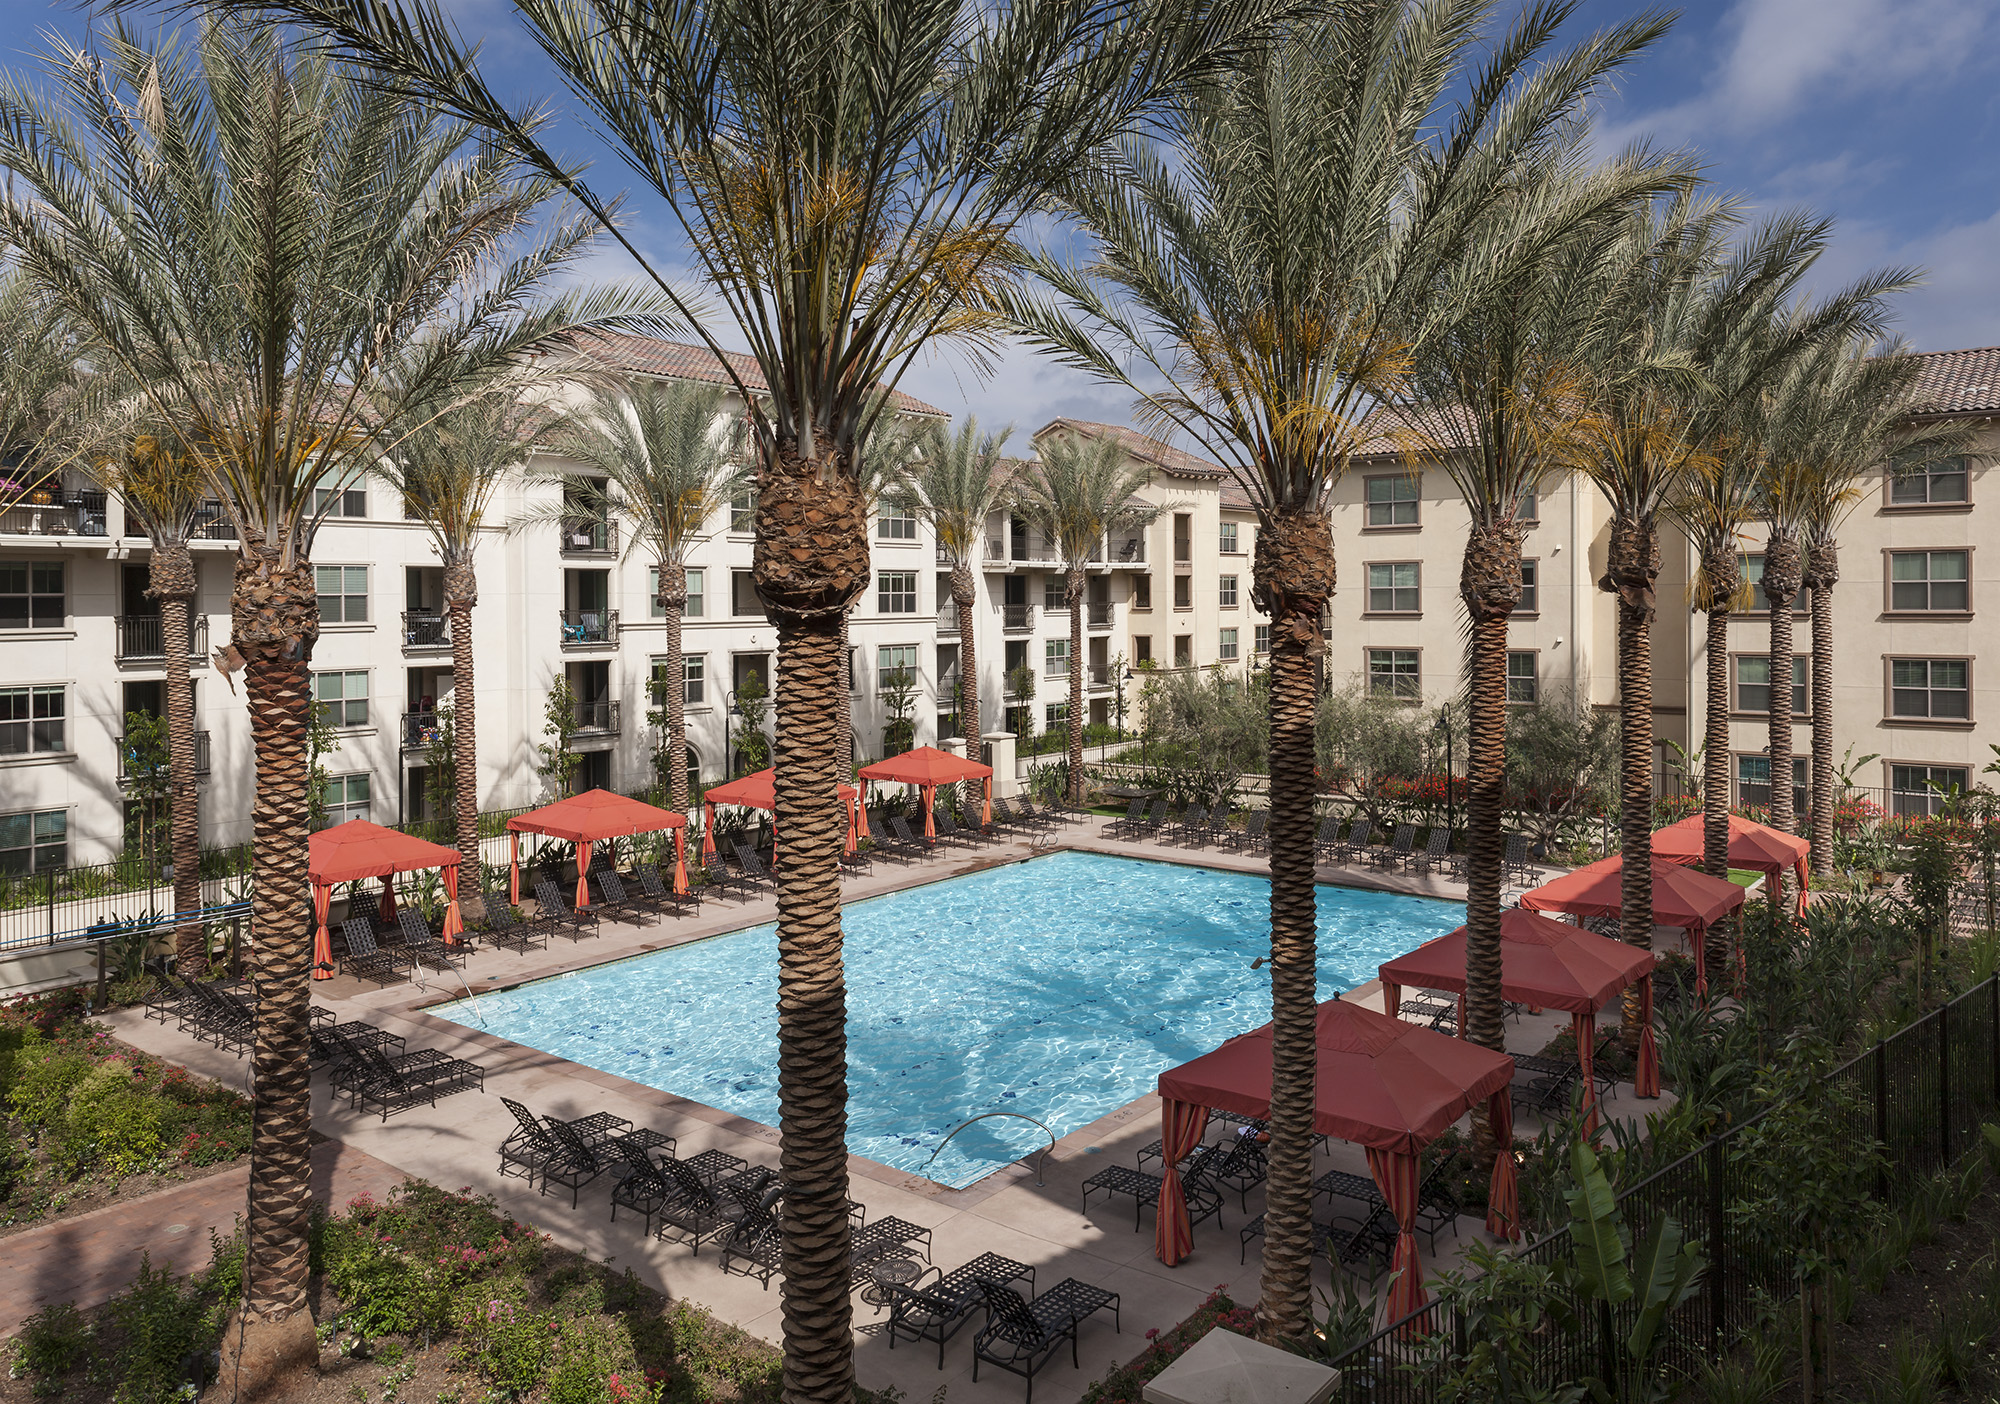 View of the courtyard pool surrounded by lounge chairs, cabanas and palm trees